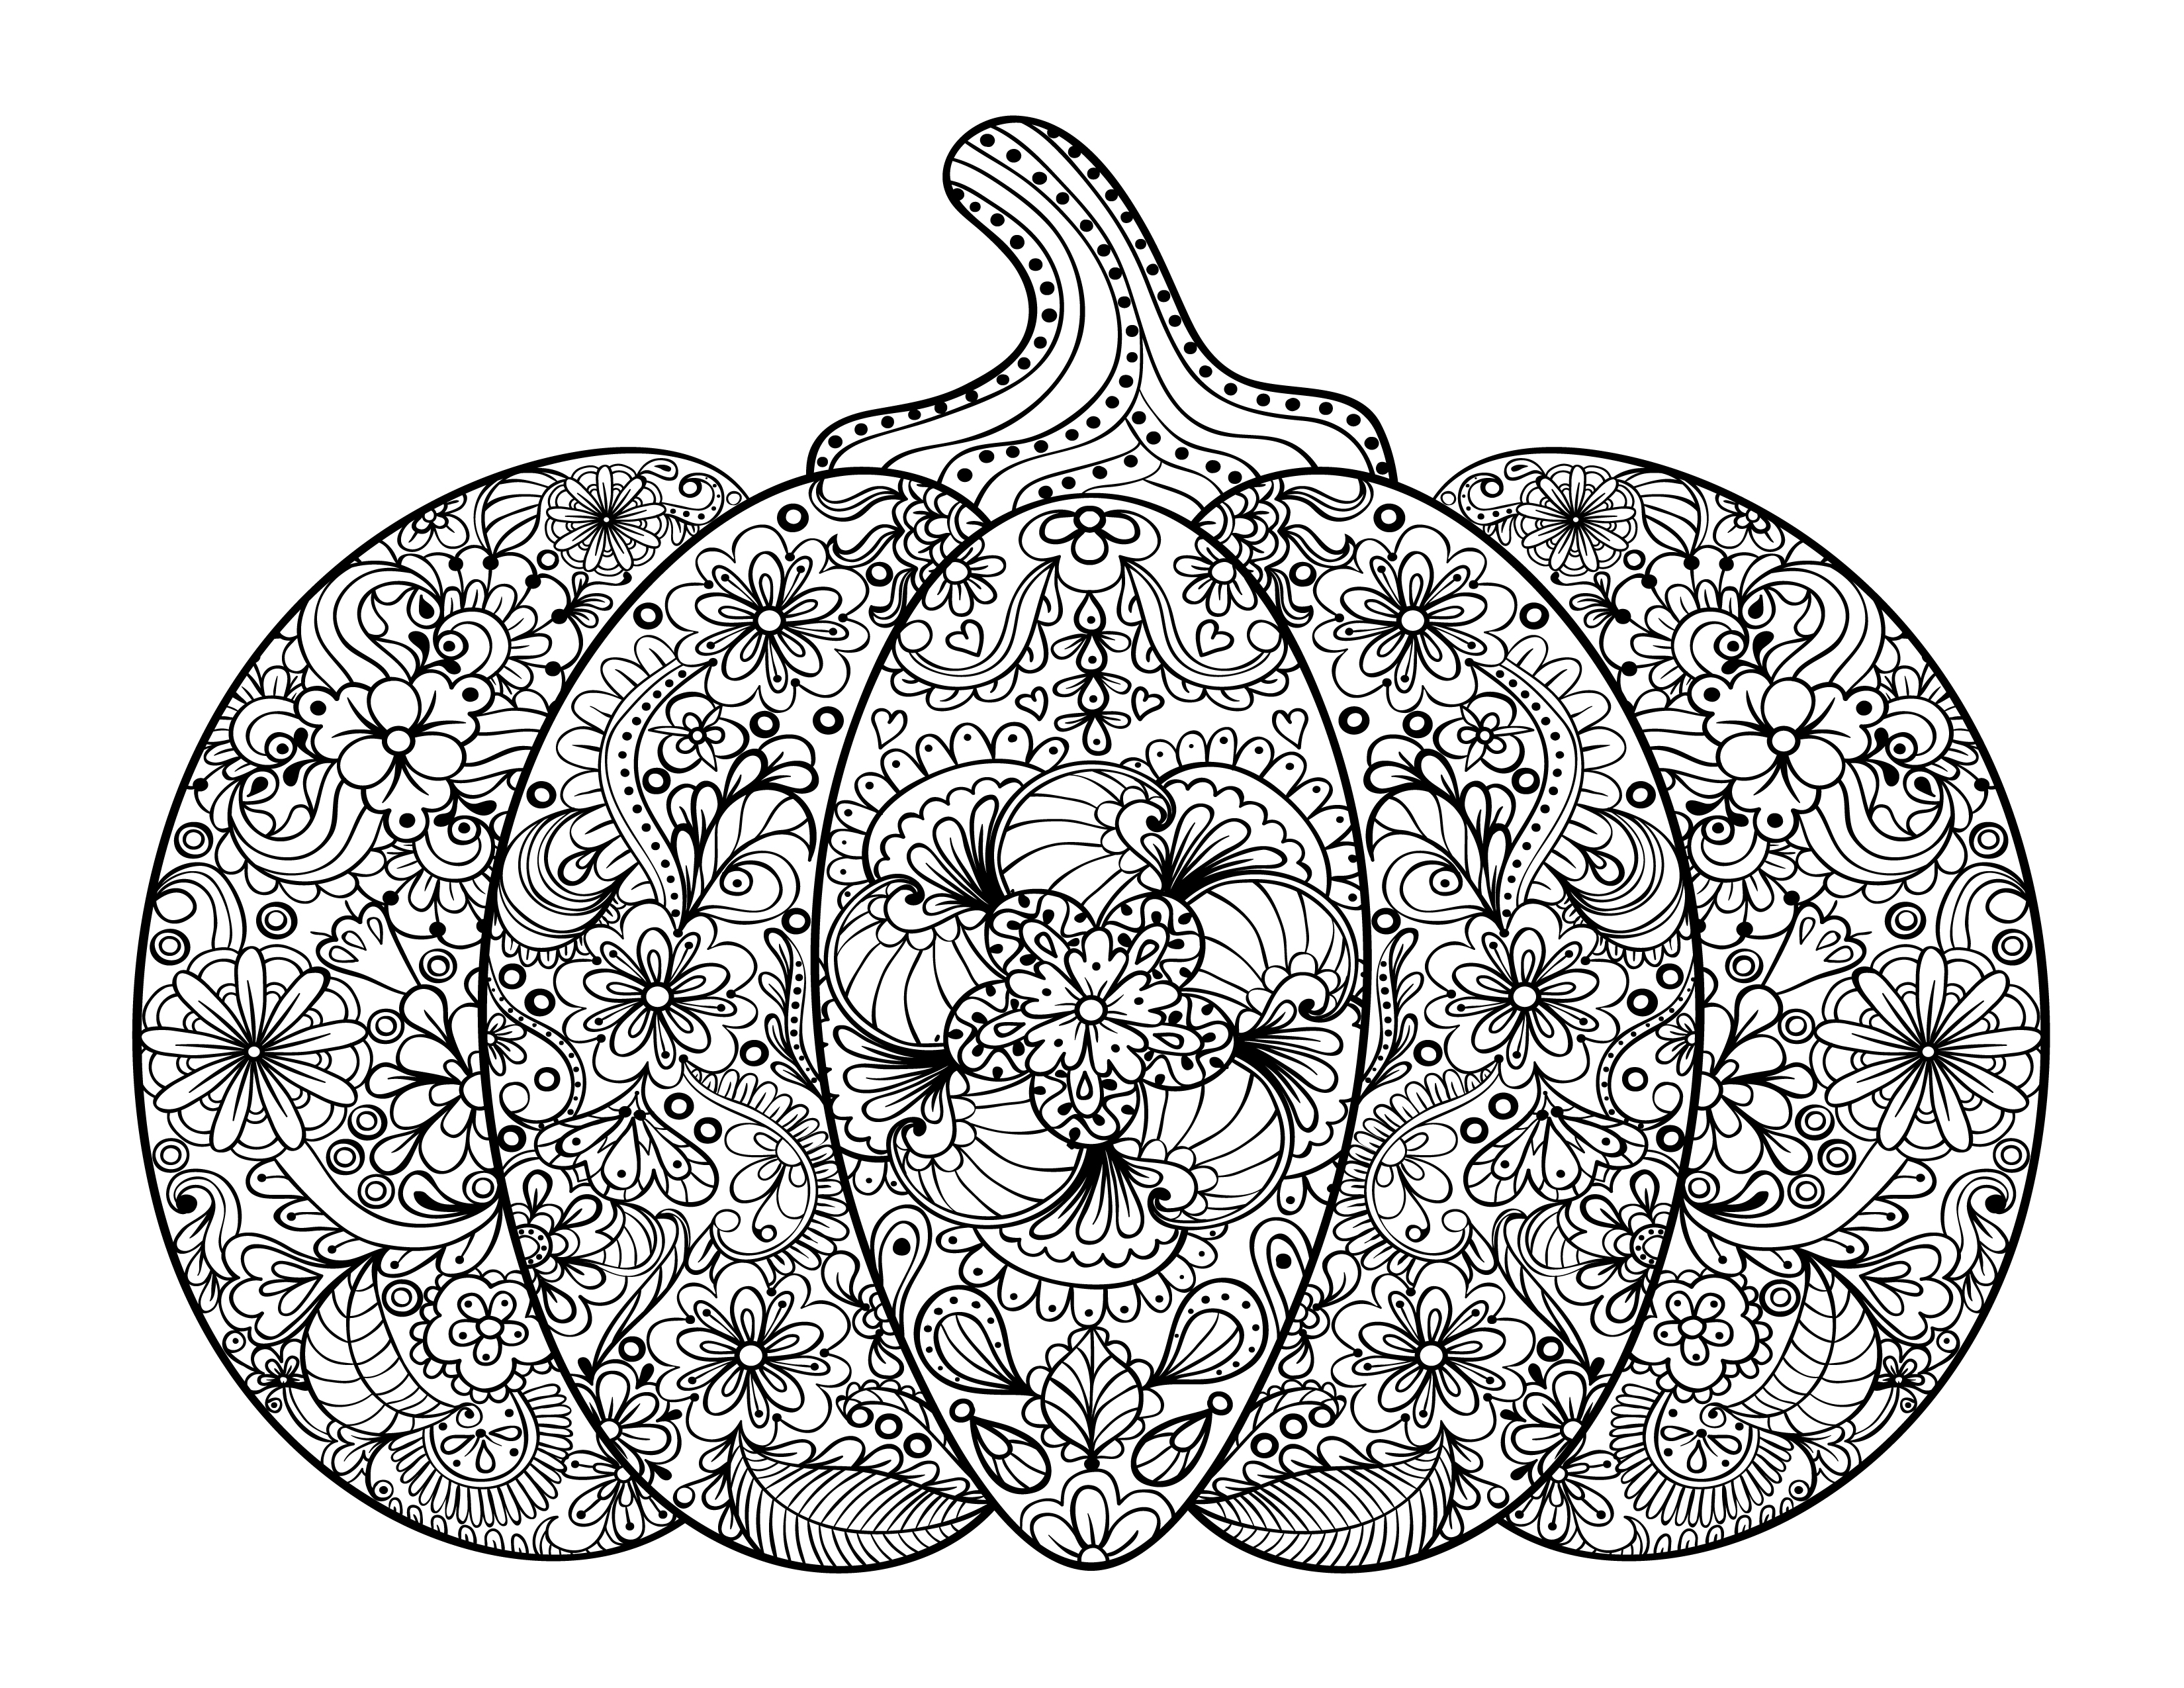 free printable pictures of pumpkins pumpkins coloring pages to celebrate thanksgiving learn printable of pumpkins free pictures